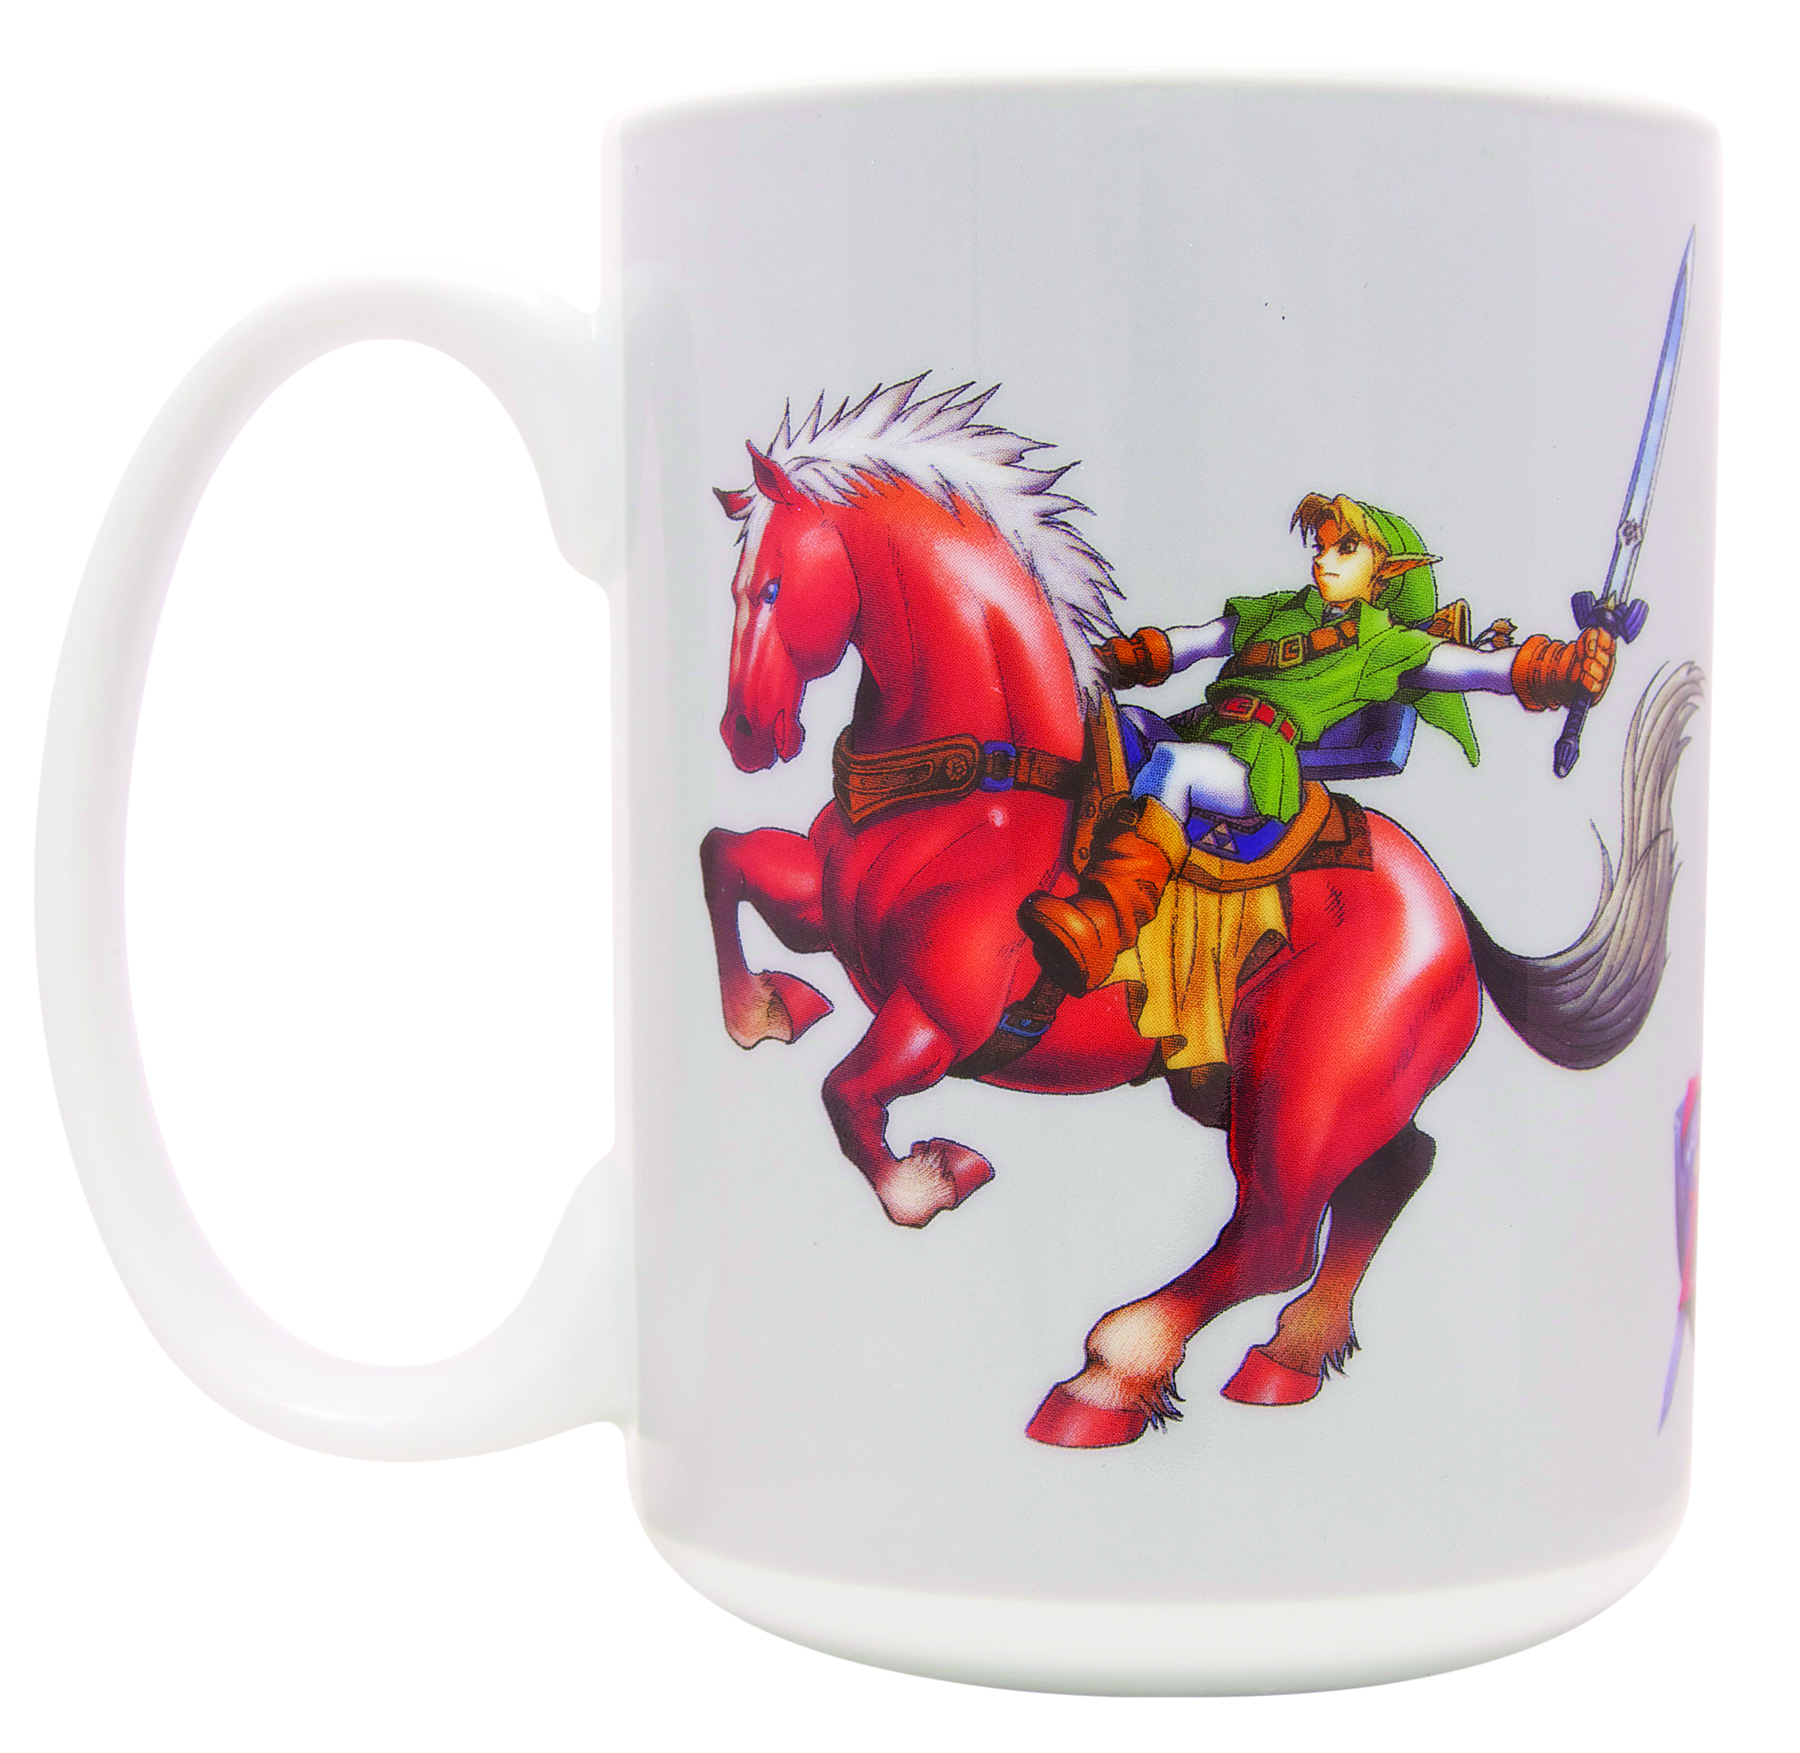 LEGEND OF ZELDA OCARINA OF TIME LINK ON EPONA MUG